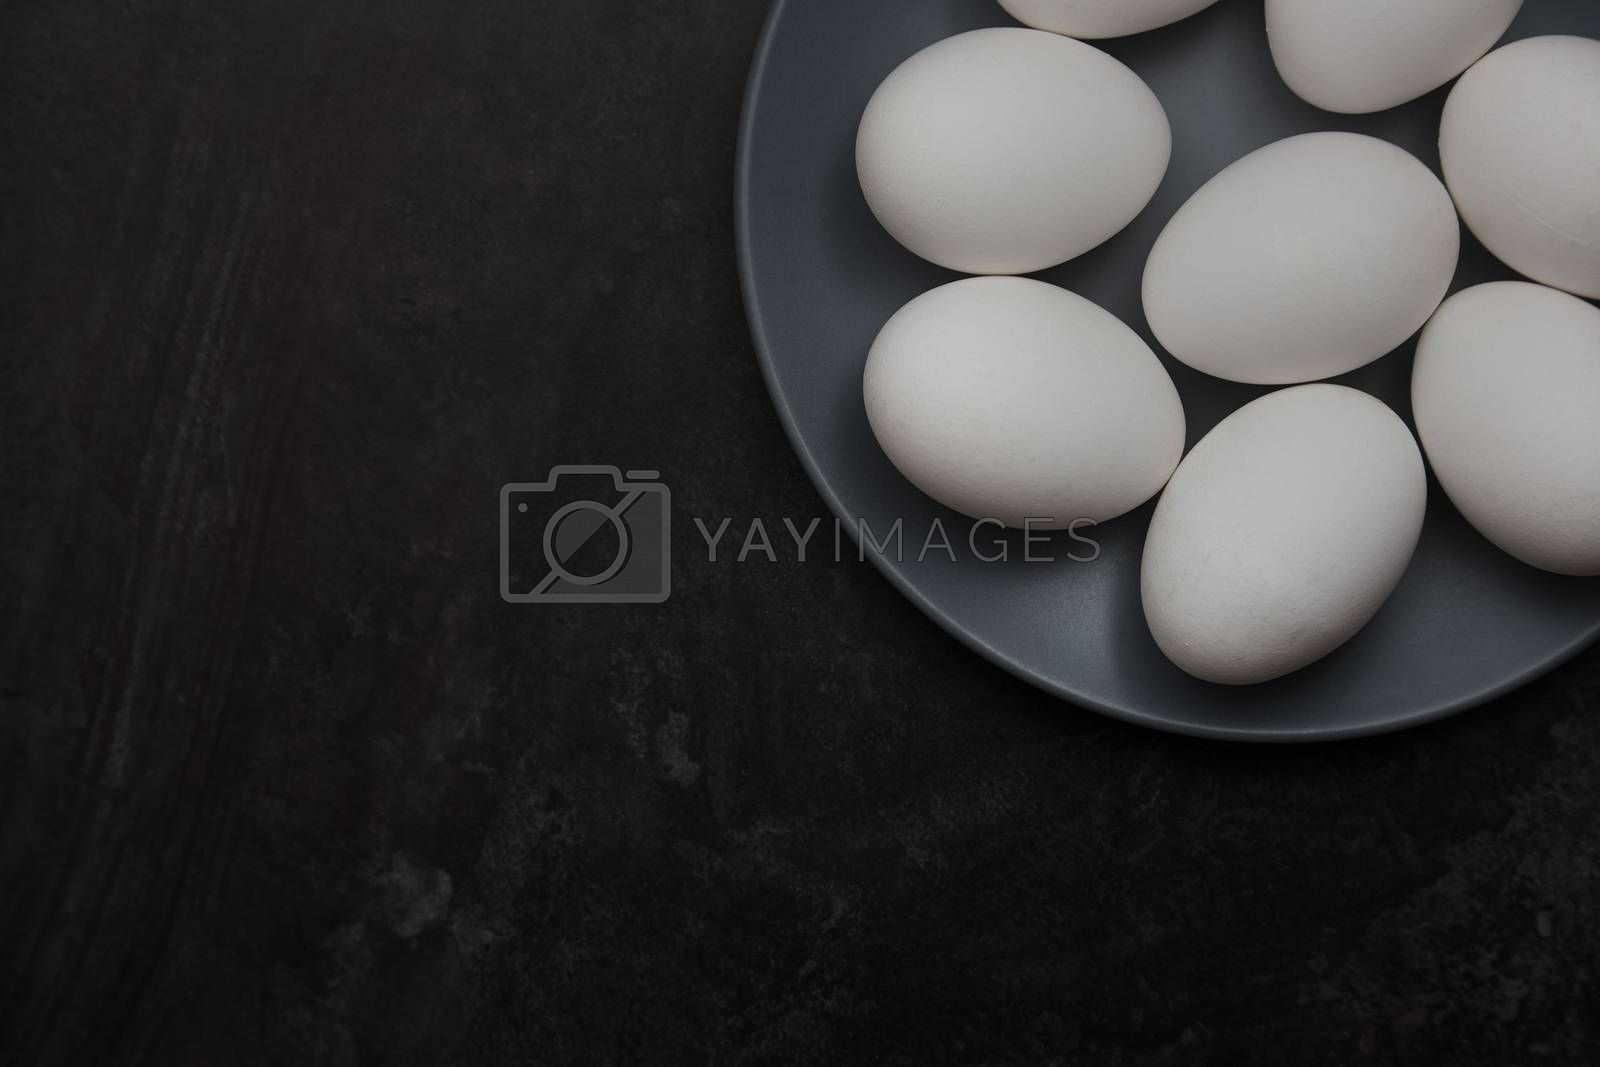 Chicken eggs on a plate by Novic